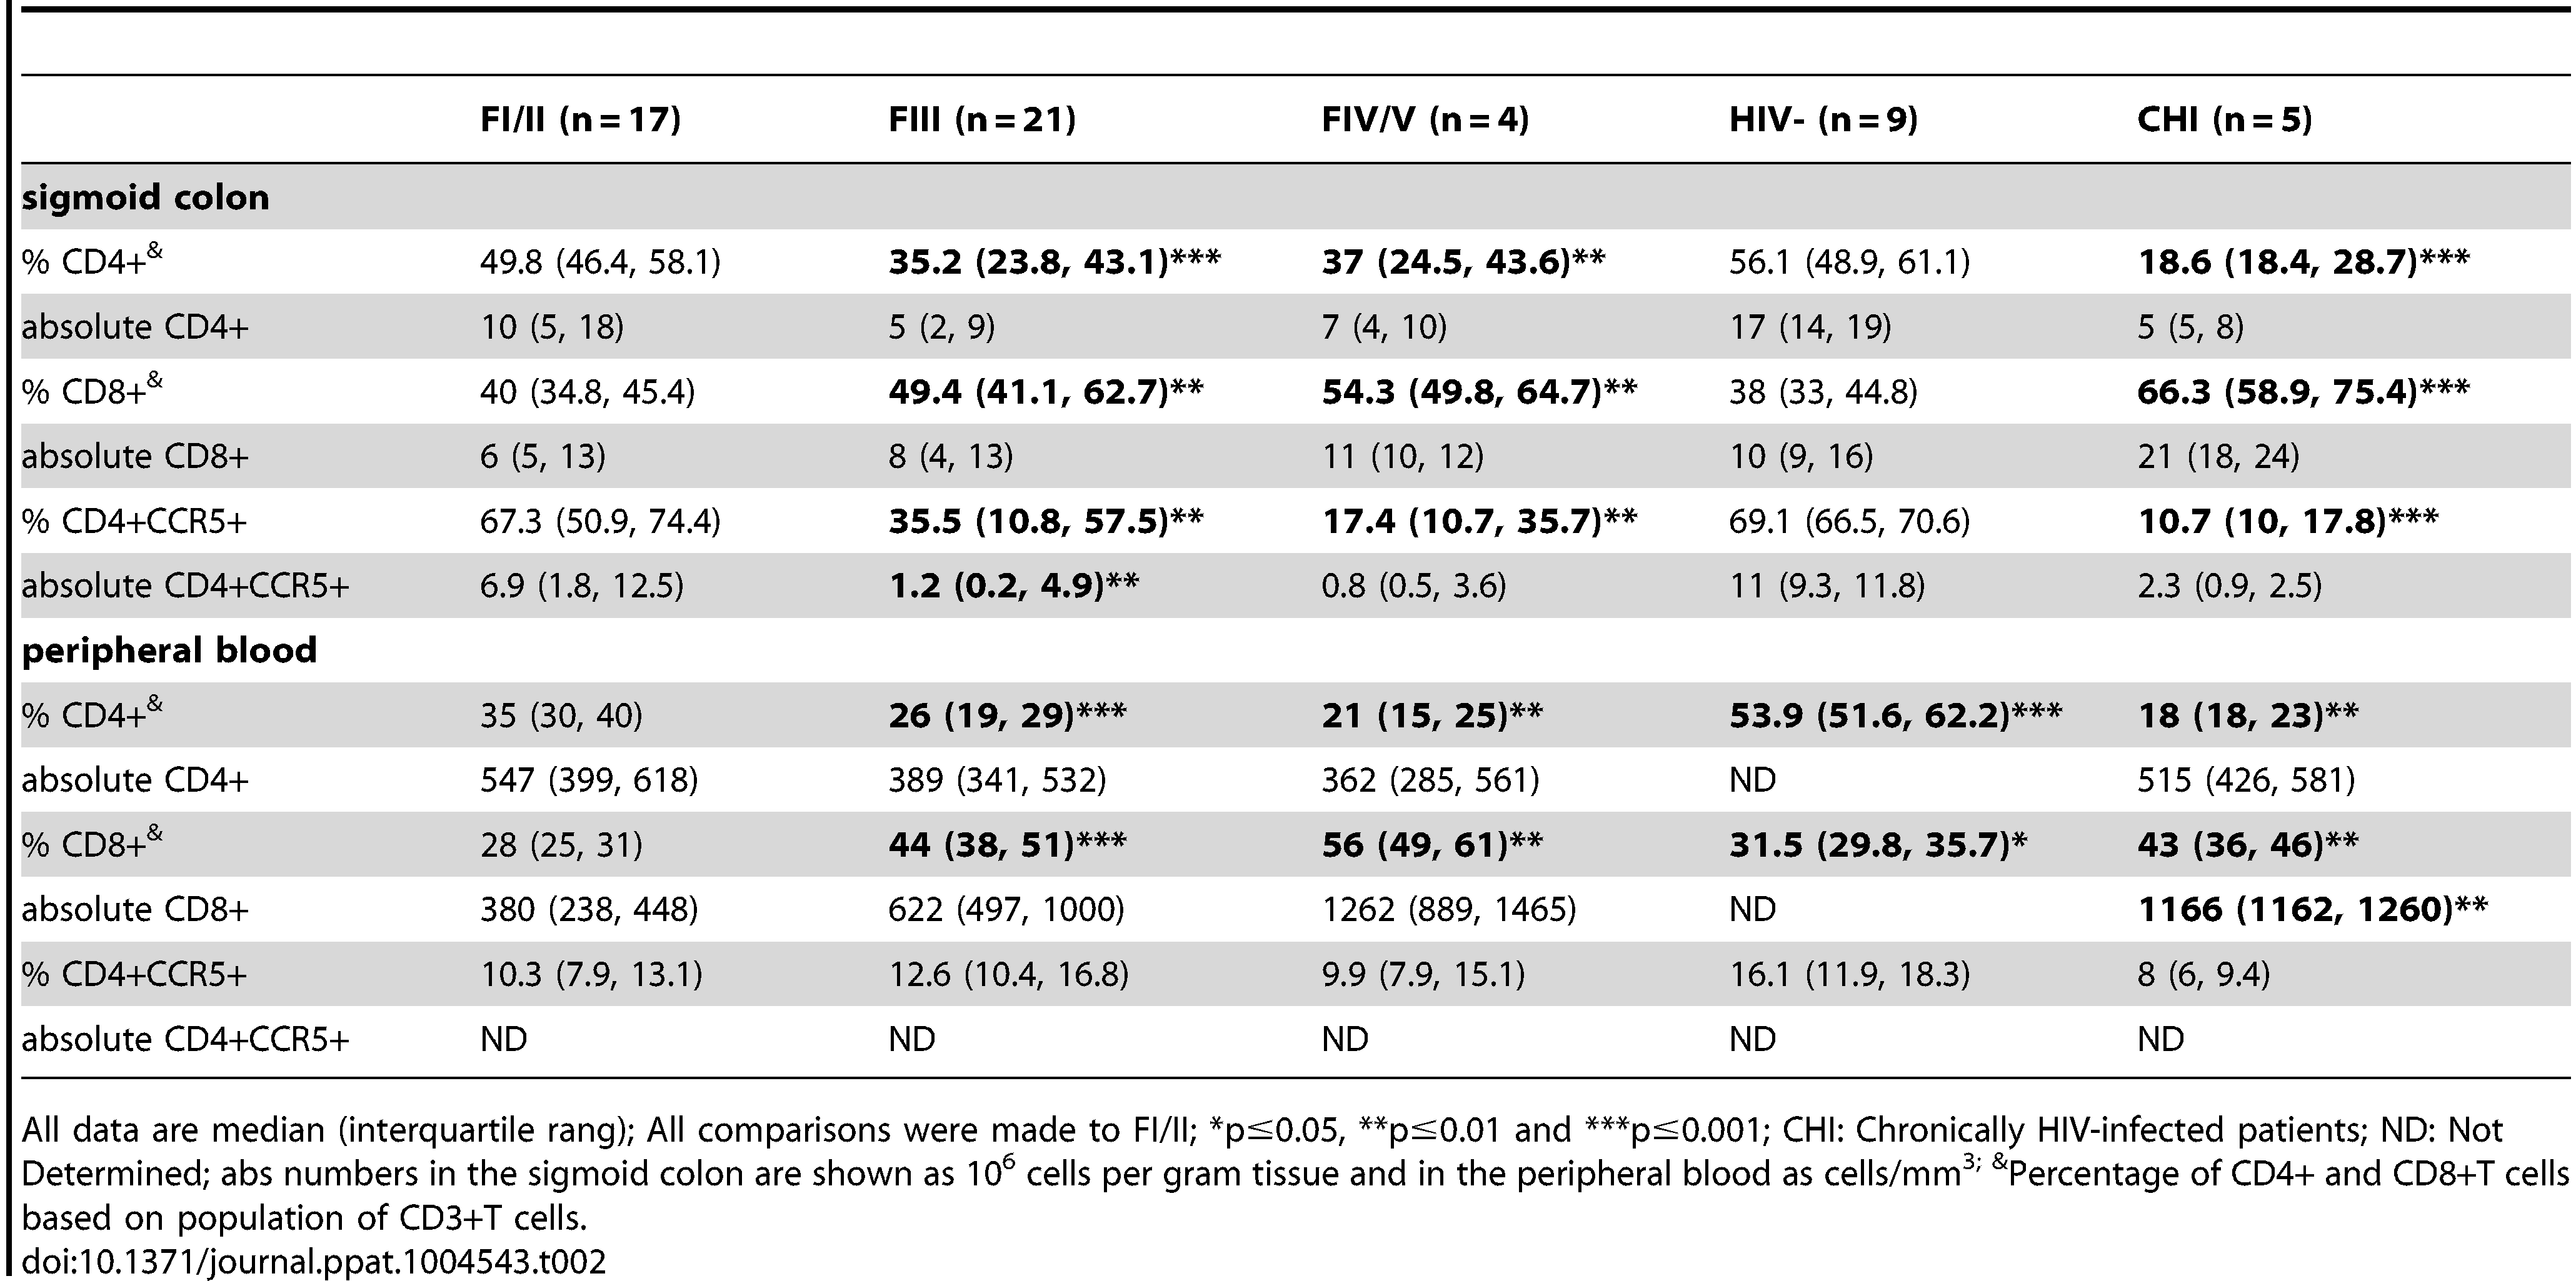 Proportion and absolute number of CD4+, CD4+CCR5+ and CD8+ T cells in sigmoid colon and peripheral blood at baseline in HIV-, FI/II, FIII, FIV/V and CHI subjects.